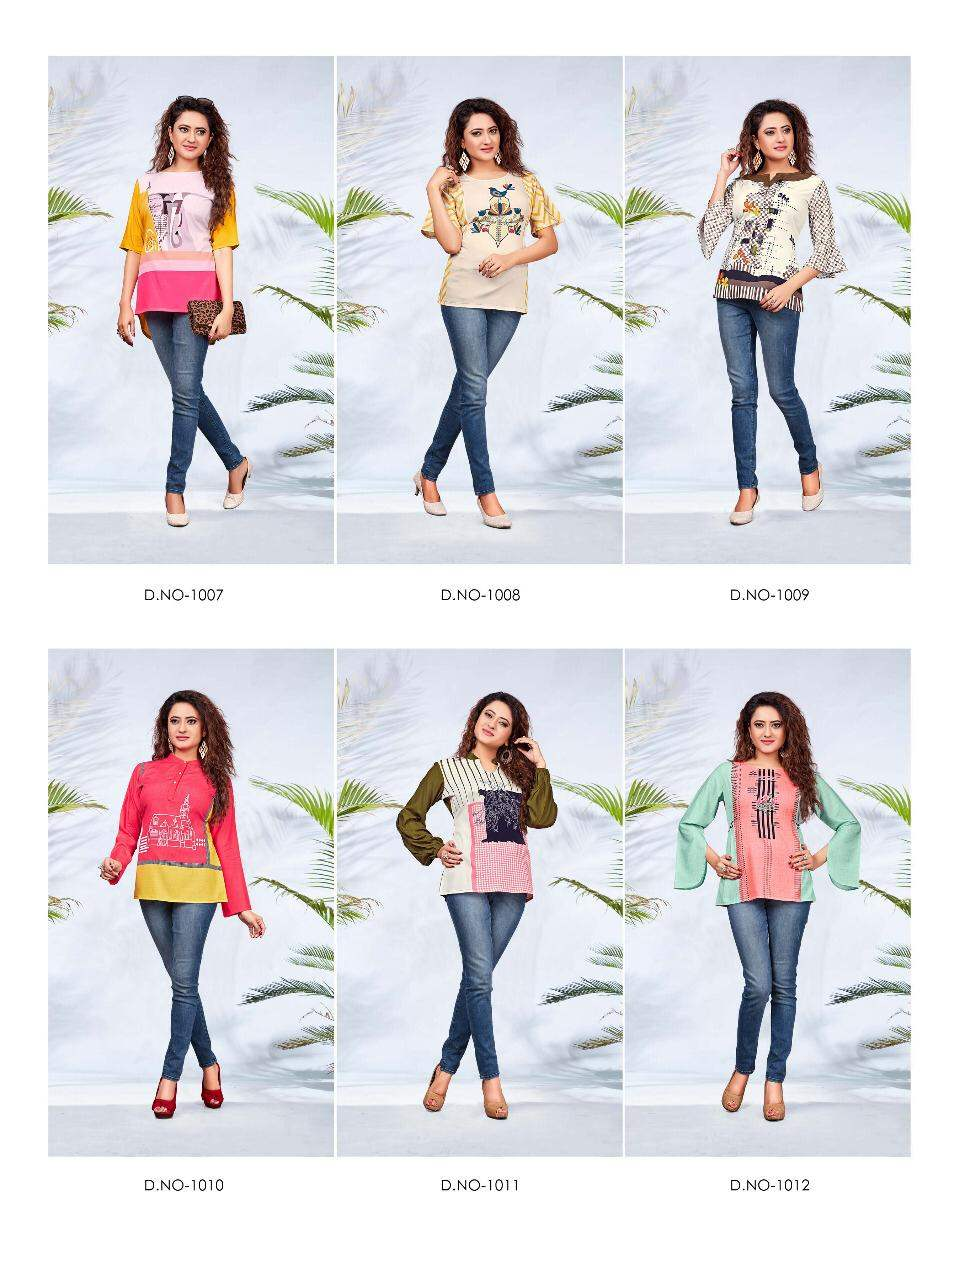 12 Angel Girlish collection 1